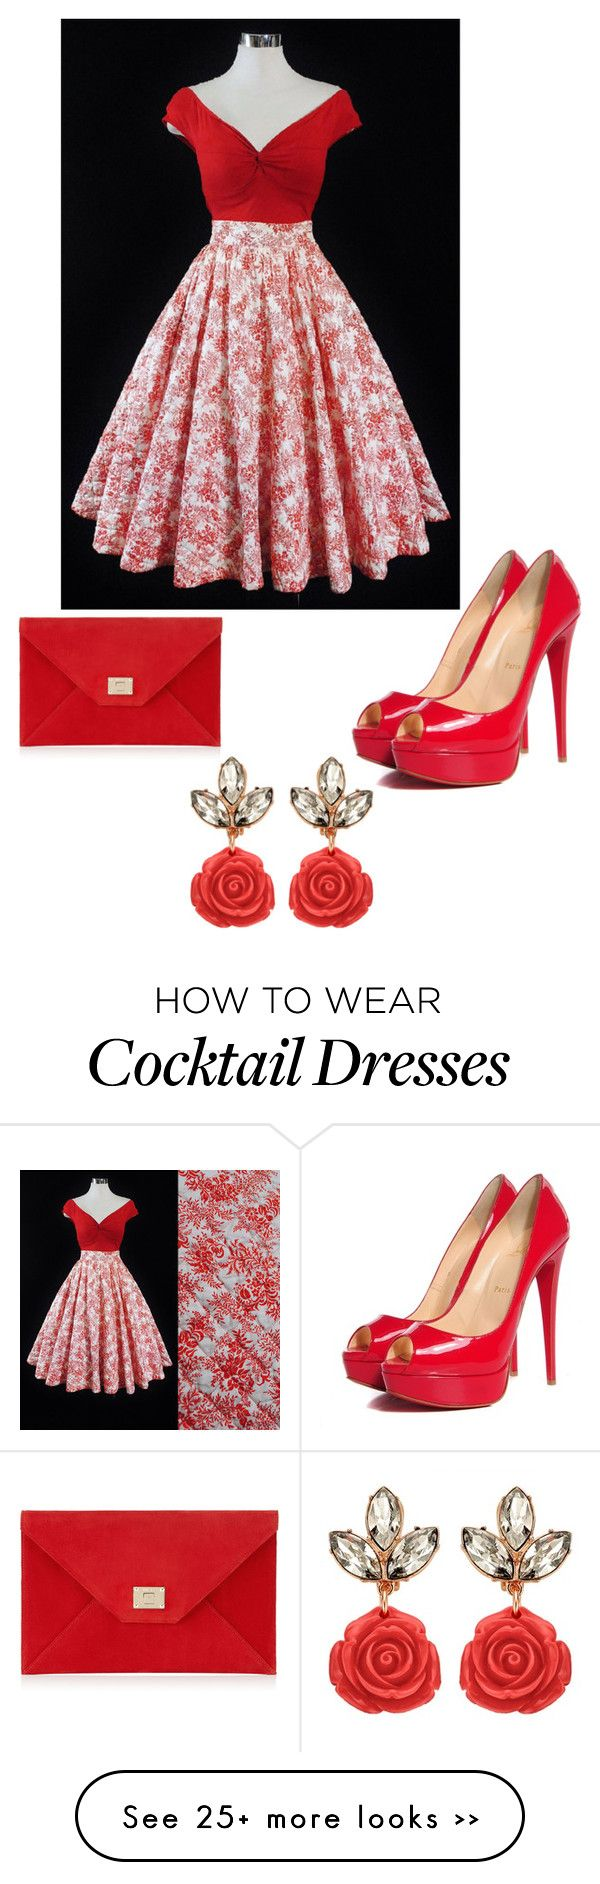 best rojo images on pinterest red blouses and cocktail dresses